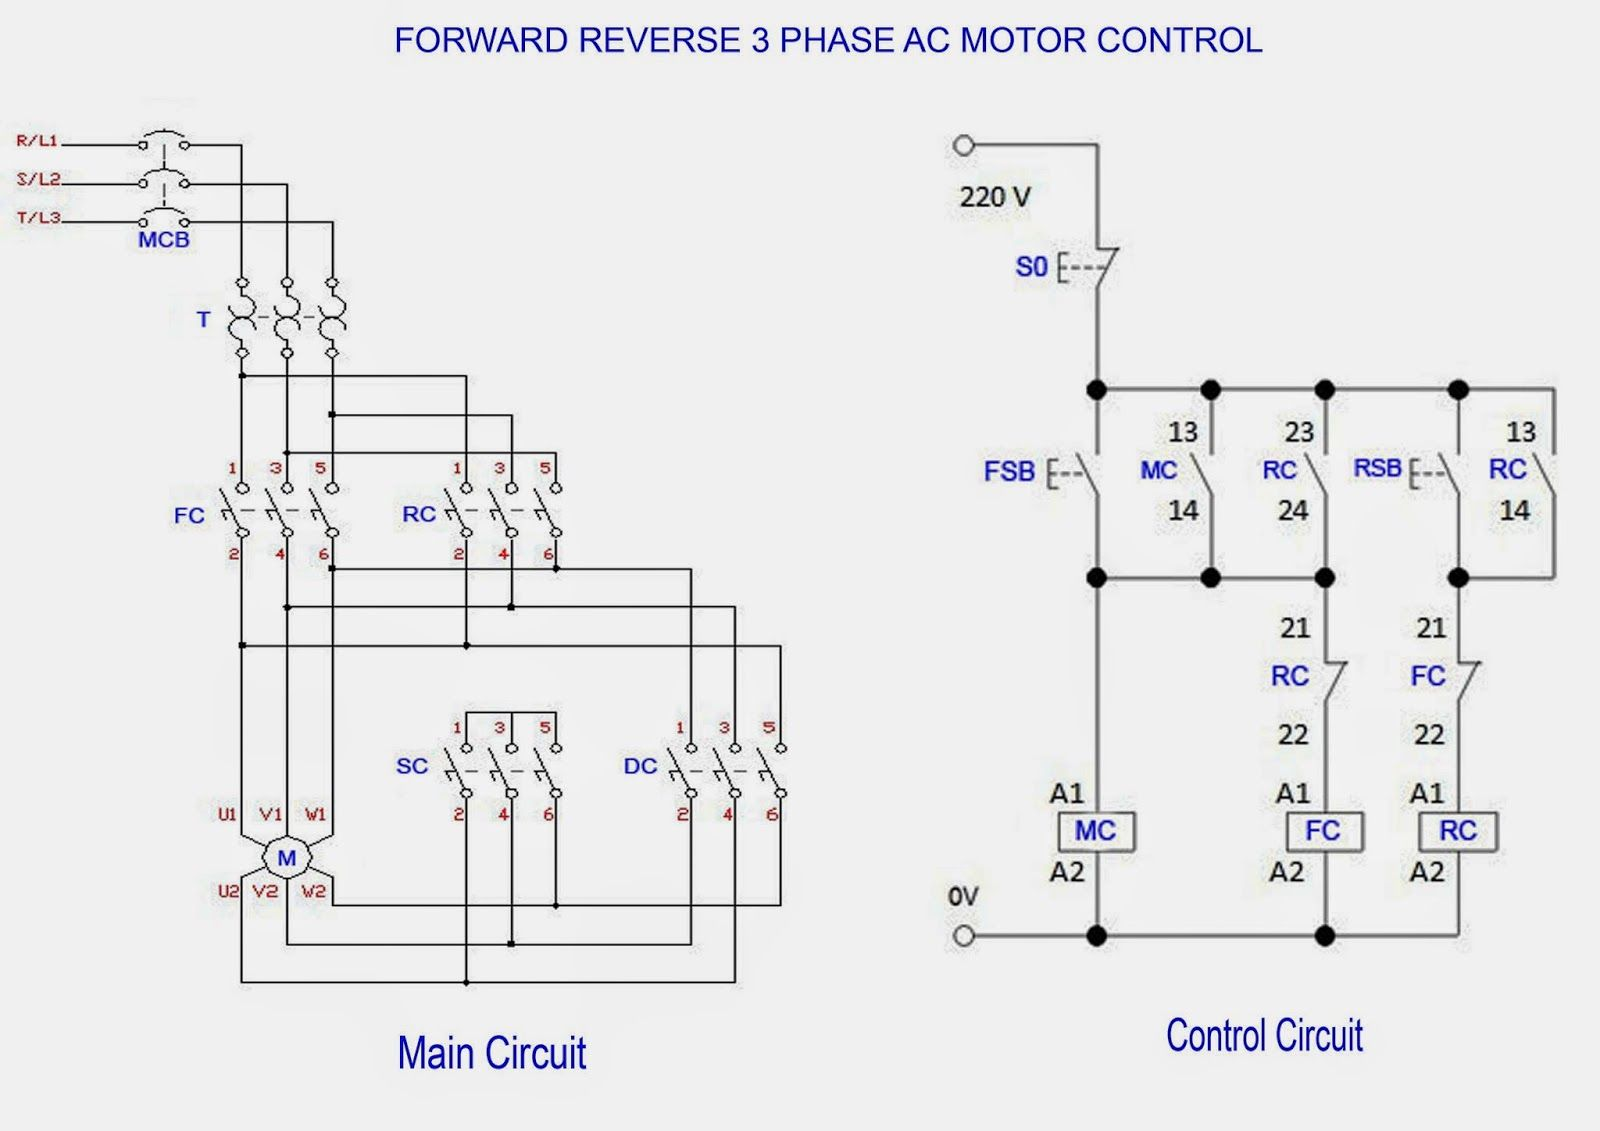 220 3 Phase Wiring Diagram - Wiring Diagrams Clicks  Phase Wiring Diagrams Motors on 3 phase motor windings, three-phase transformer banks diagrams, 3 phase motor speed controller, baldor ac motor diagrams, 3 phase motor repair, 3 phase motor troubleshooting guide, 3 phase motor schematic, 3 phase stepper, 3 phase to 1 phase wiring diagram, 3 phase subpanel, 3 phase motor starter, 3 phase to single phase wiring diagram, 3 phase water heater wiring diagram, 3 phase single line diagram, basic electrical schematic diagrams, 3 phase squirrel cage induction motor, 3 phase plug, 3 phase electrical meters, 3 phase motor testing, 3 phase outlet wiring diagram,